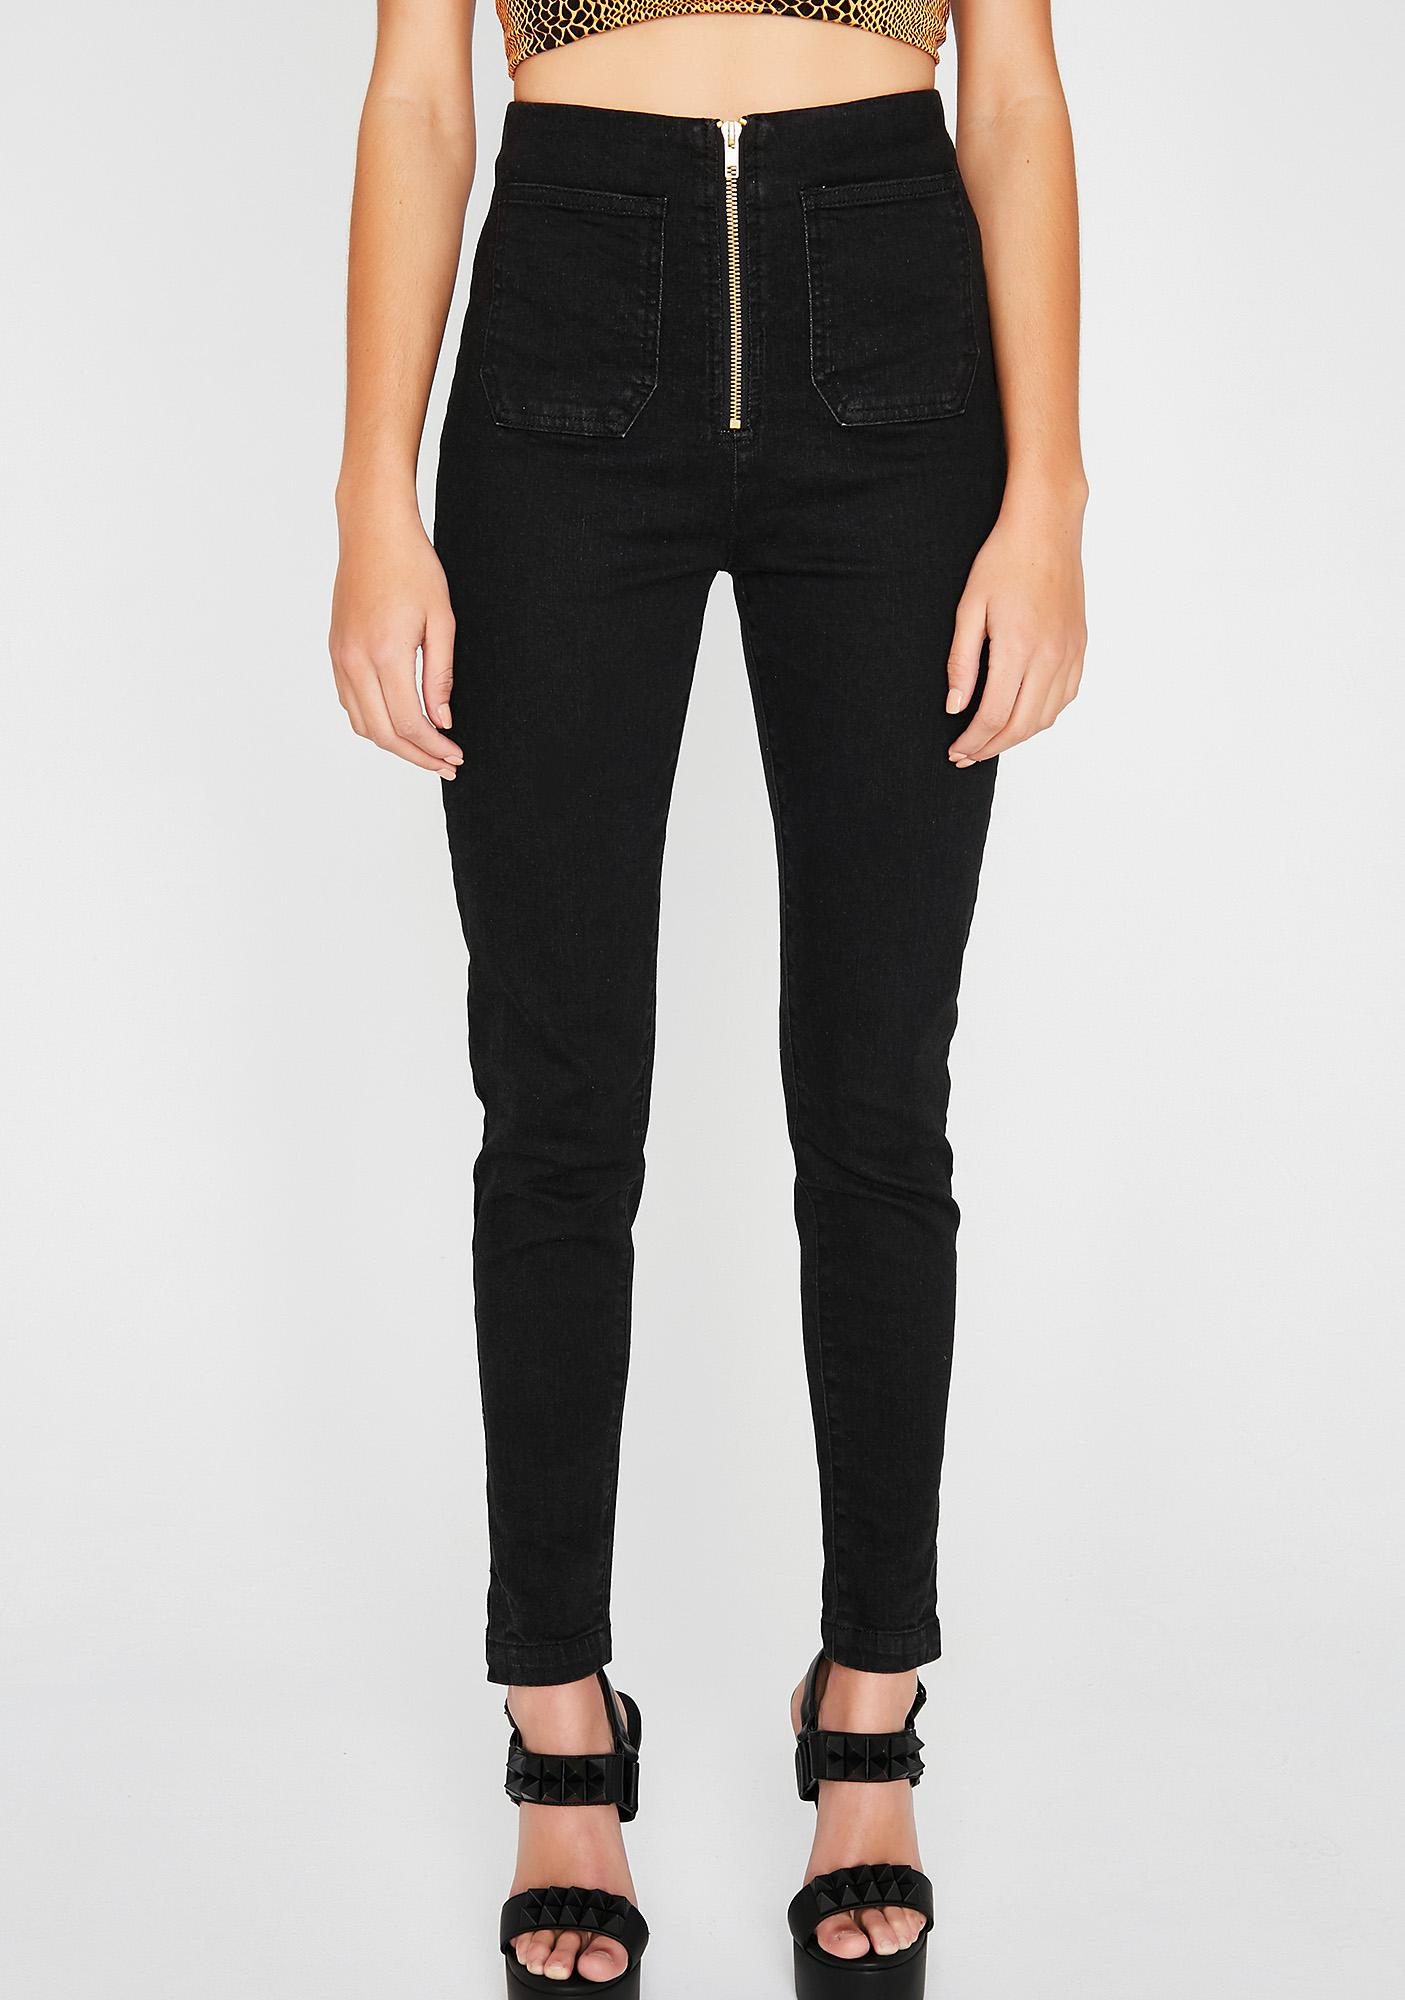 One N' Only Zip Jeans